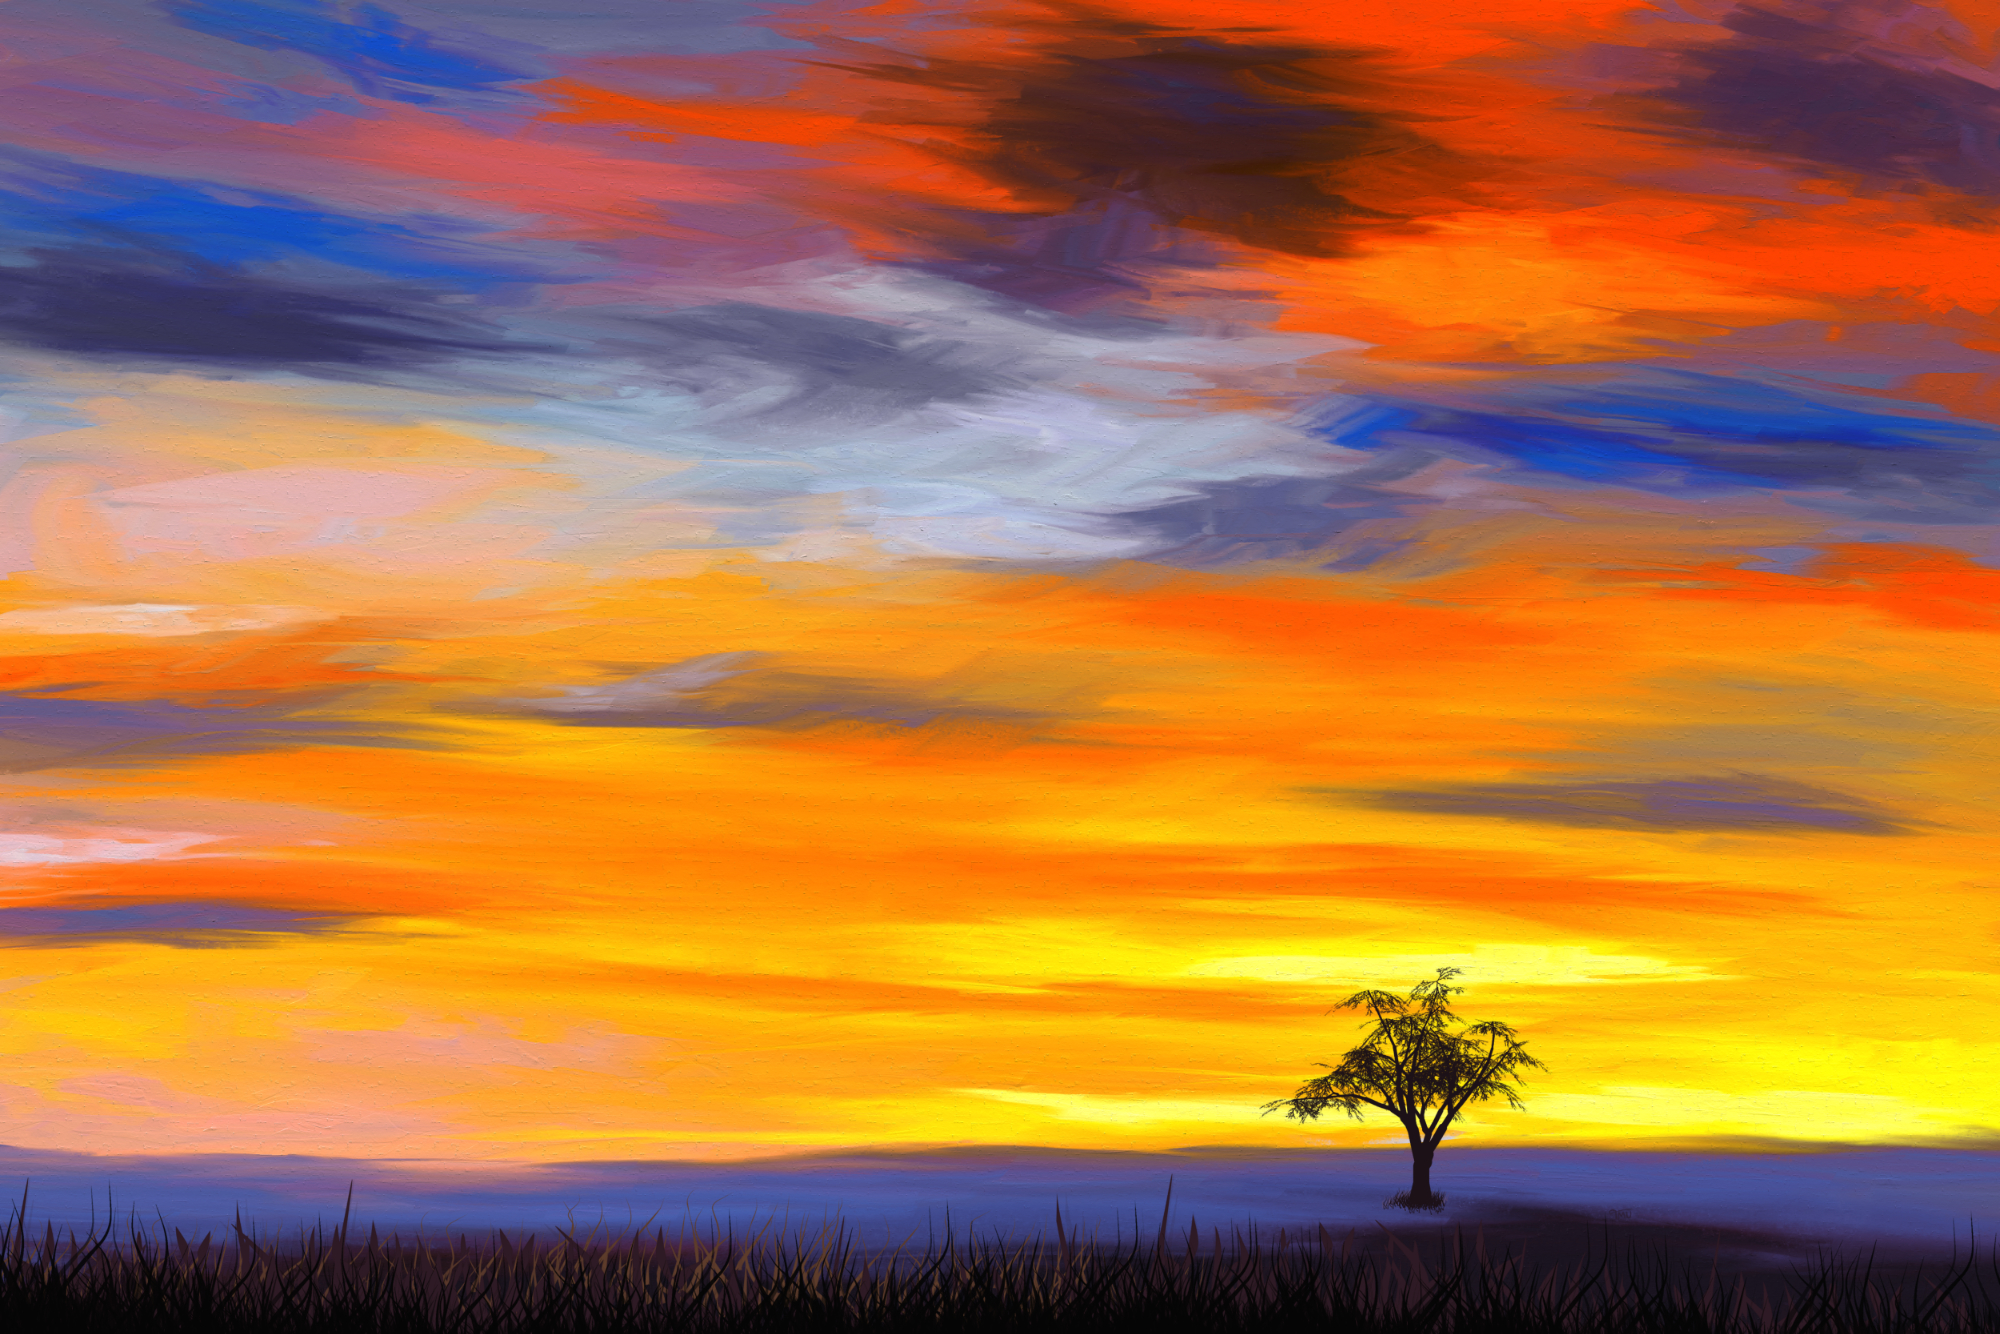 Digital painting of a landscape with a lonely tree